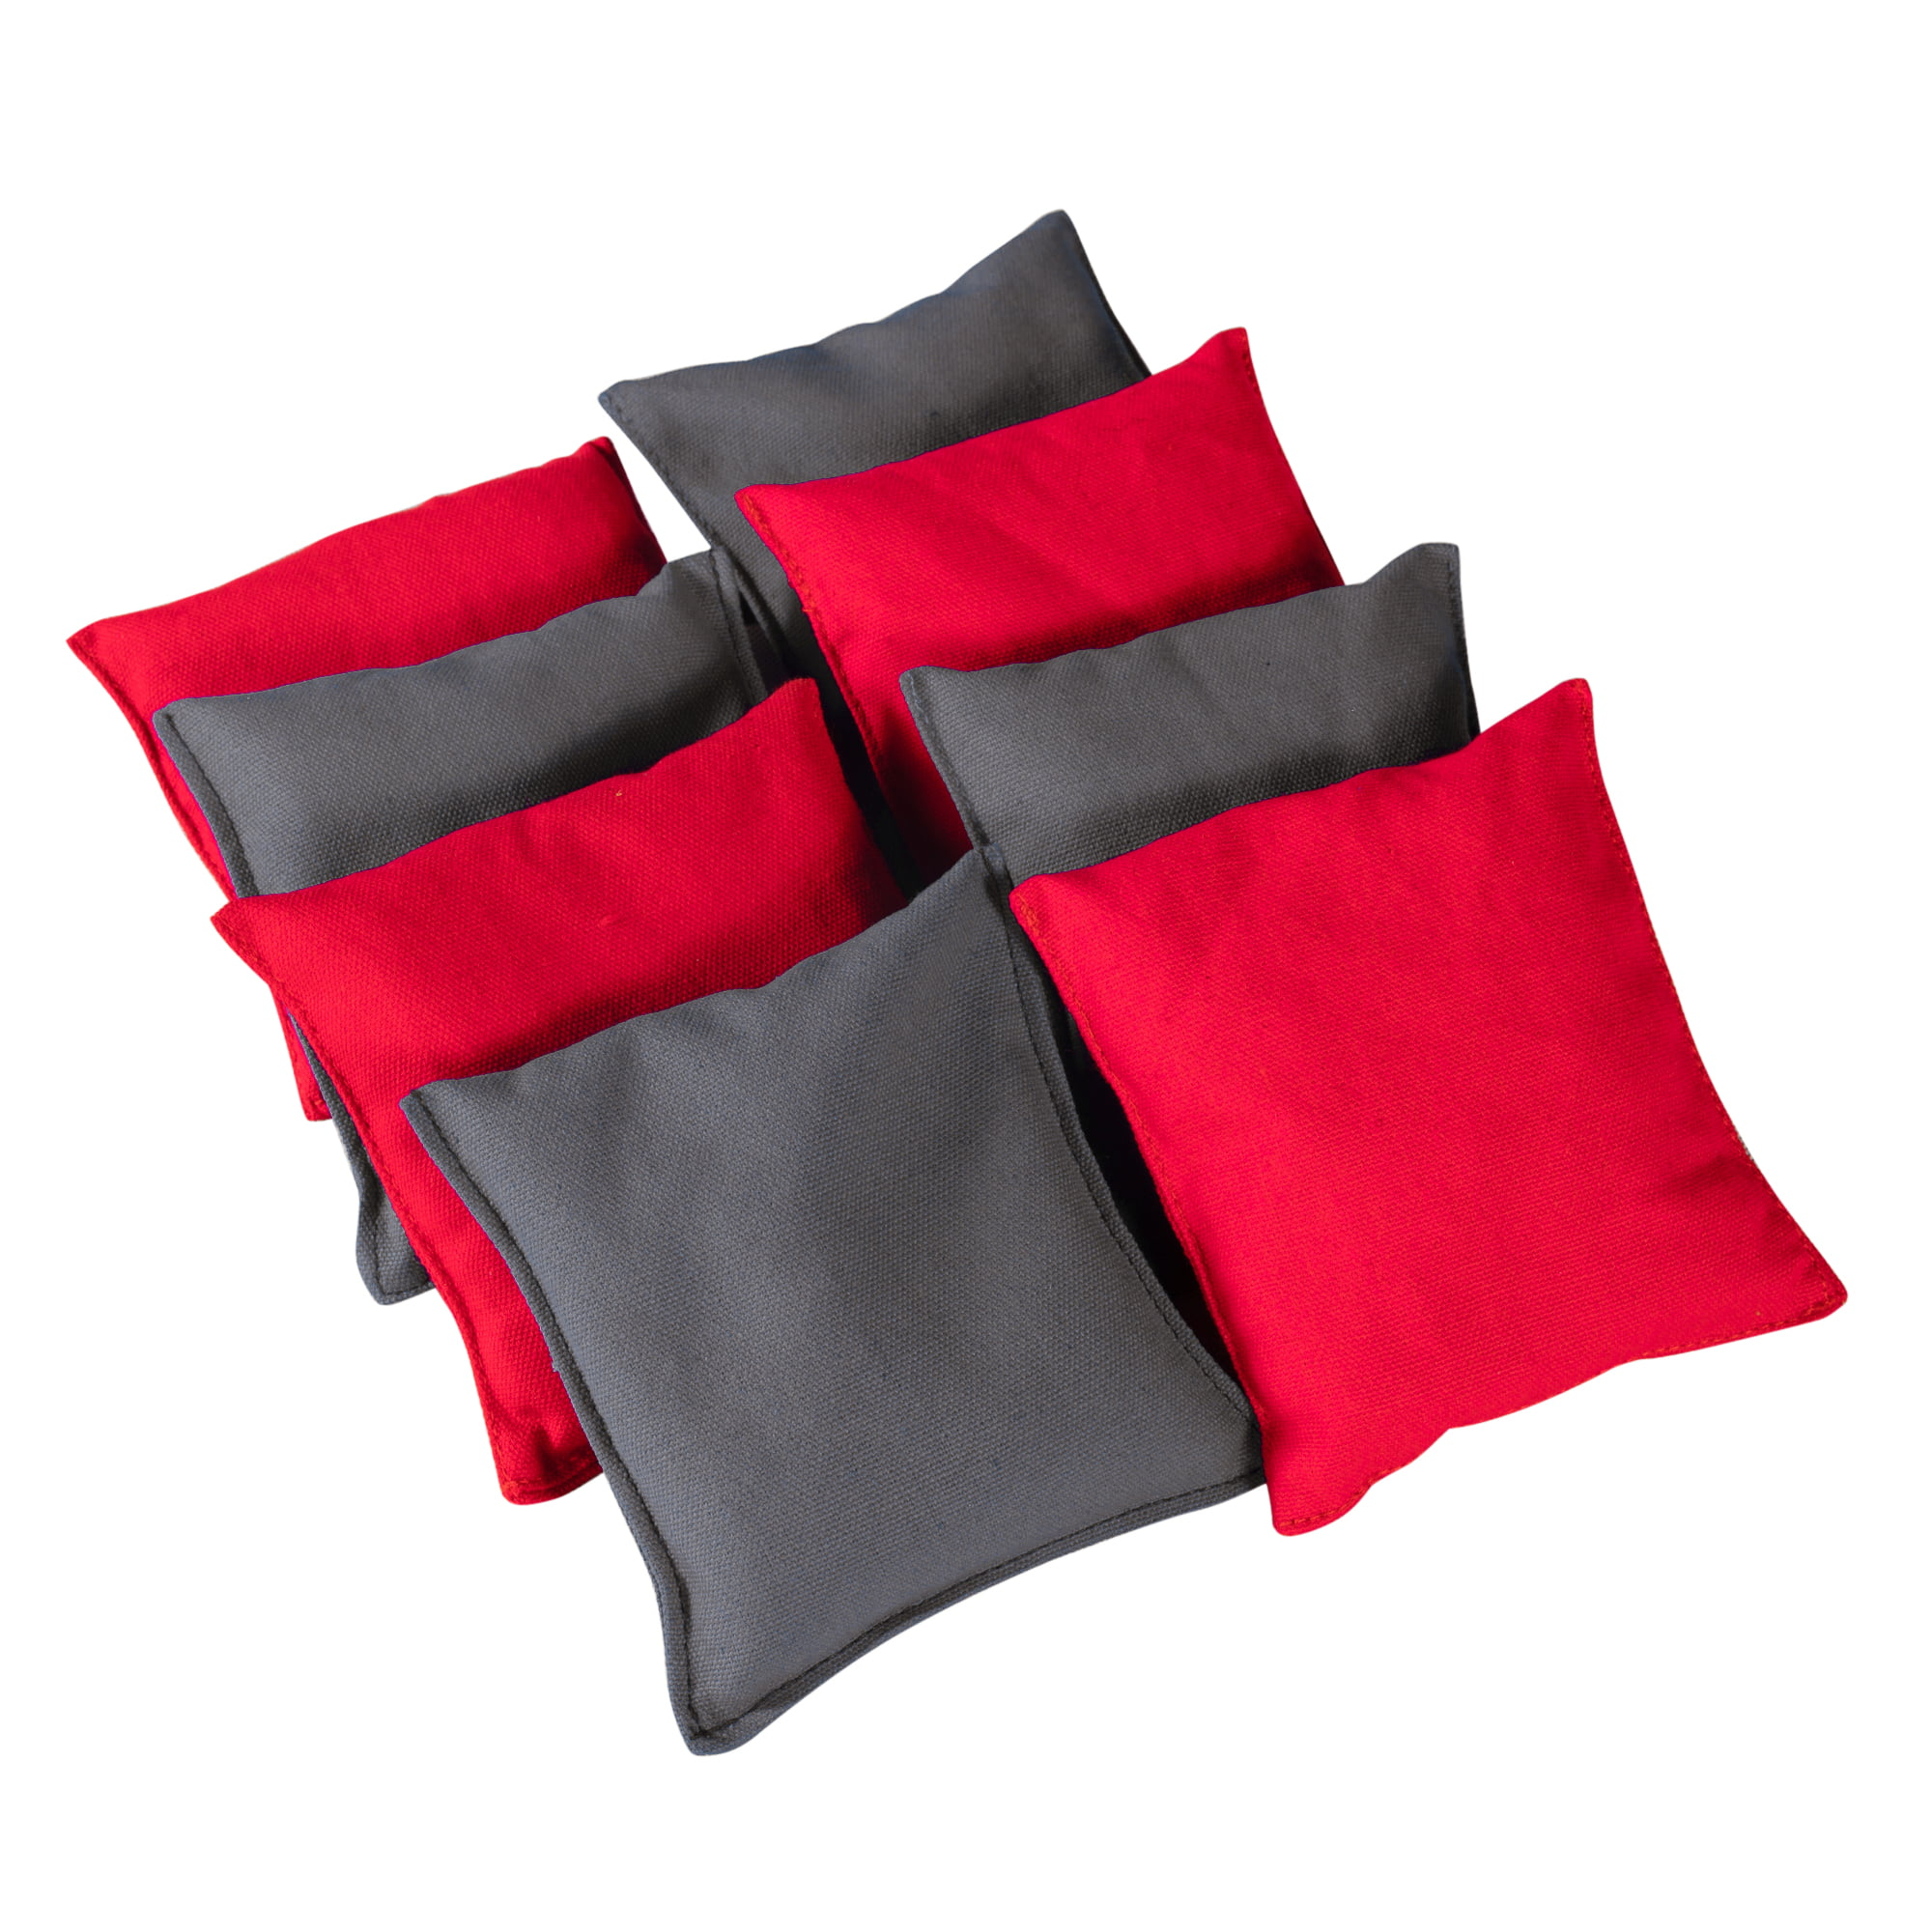 Cornhole Beanbags Replacement 4 Grey & 4 Red (8 Bags) by Phelps Group